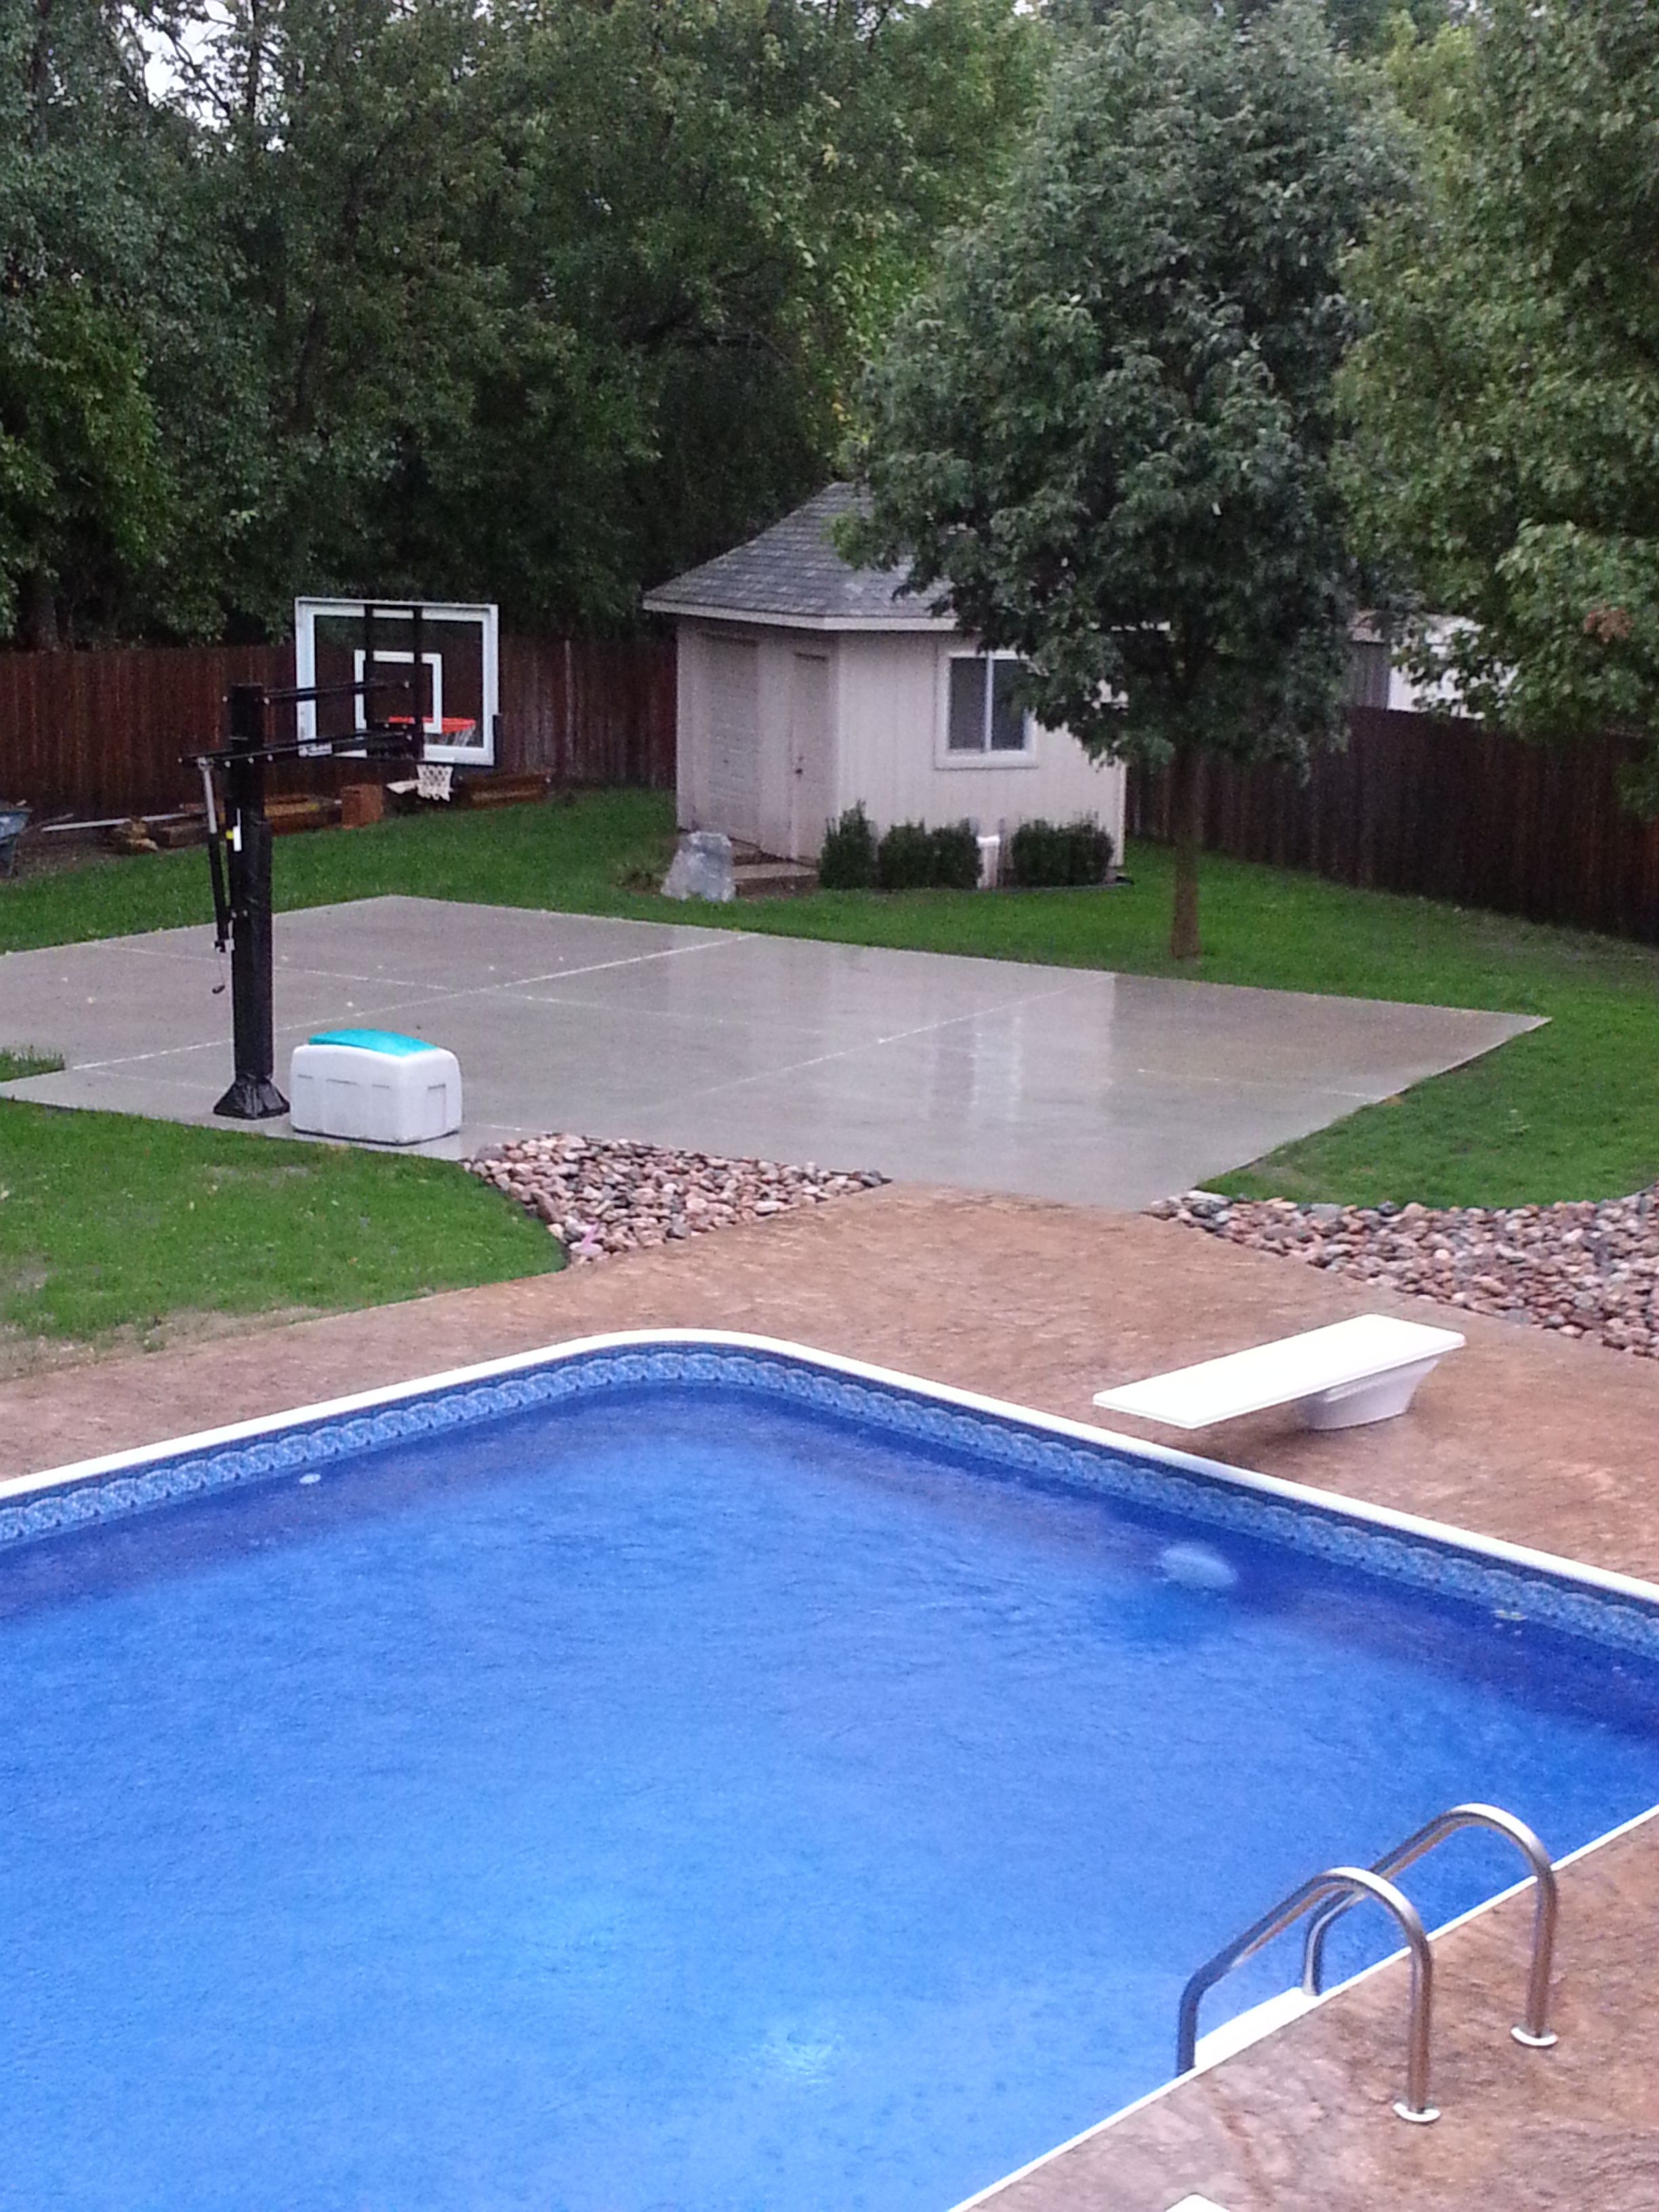 Pin By Pro Dunk Hoops On Pro Dunk Hoops Basketball Goals Best Above Ground Pool In Ground Pools Above Ground Pool Decks